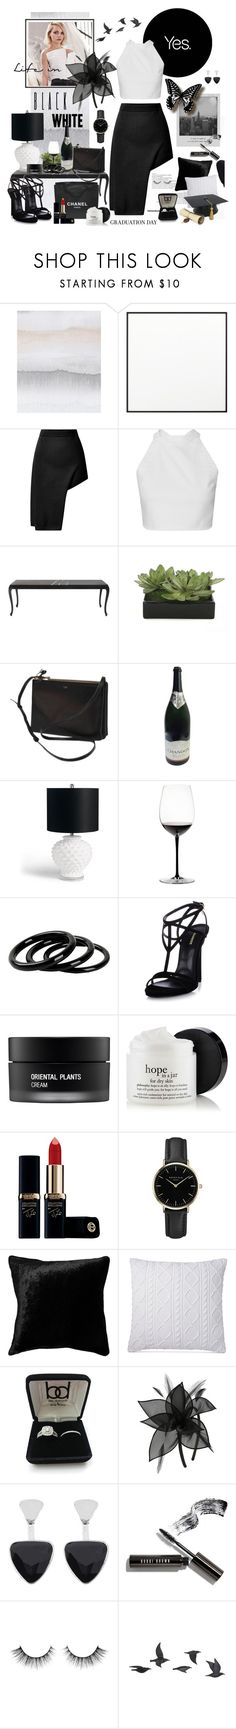 """""""Life in Black & White"""" by fashionstudiolondon ❤ liked on Polyvore featuring WALL, By Lassen, Meggie, Opening Ceremony, Chanel, Lux-Art Silks, CÉLINE, Grandin Road, Riedel and Furla"""